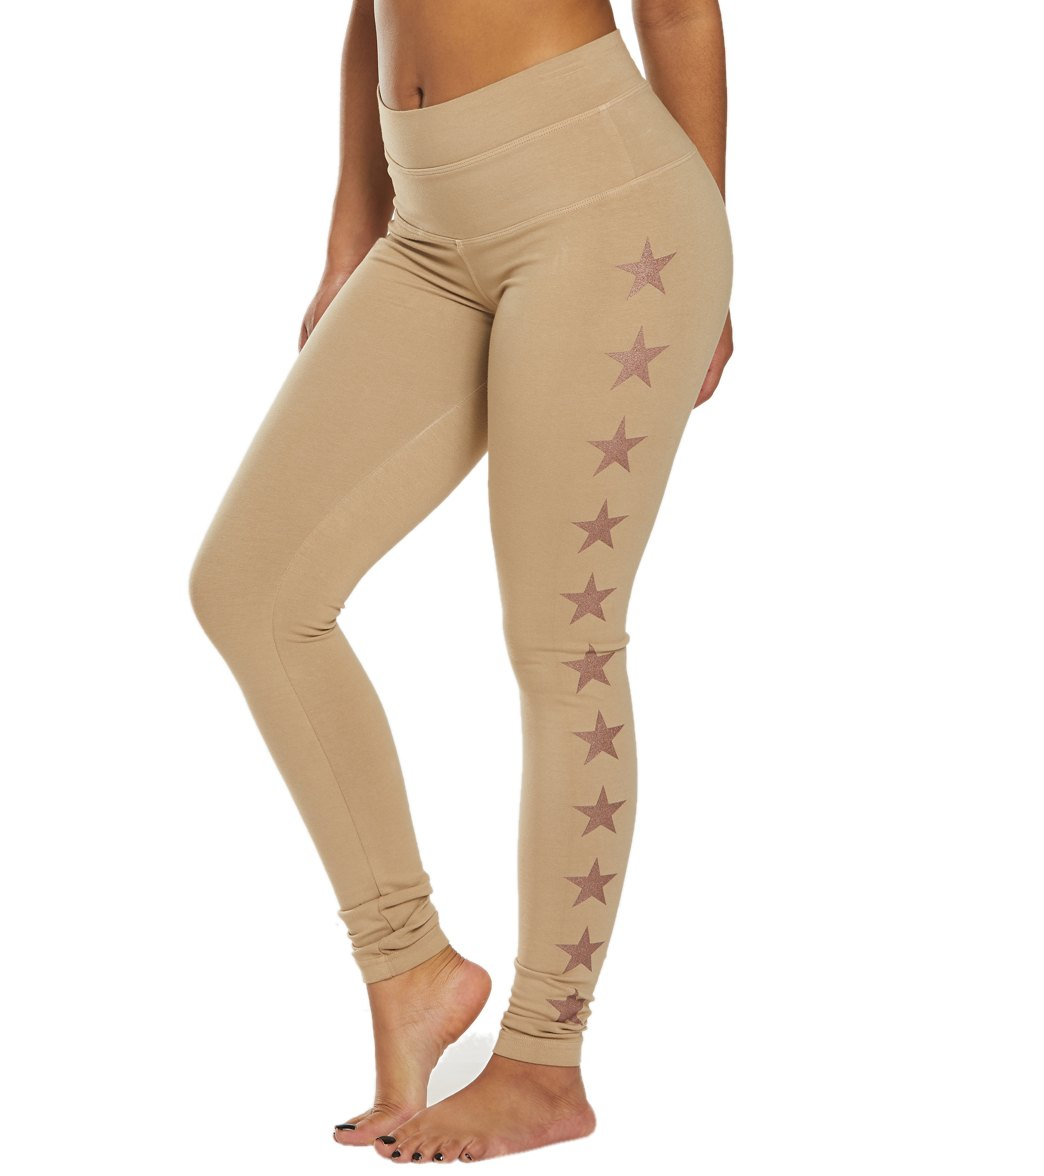 Hard Tail High Rise Star Ankle Cotton Yoga Leggings - Camel Rose